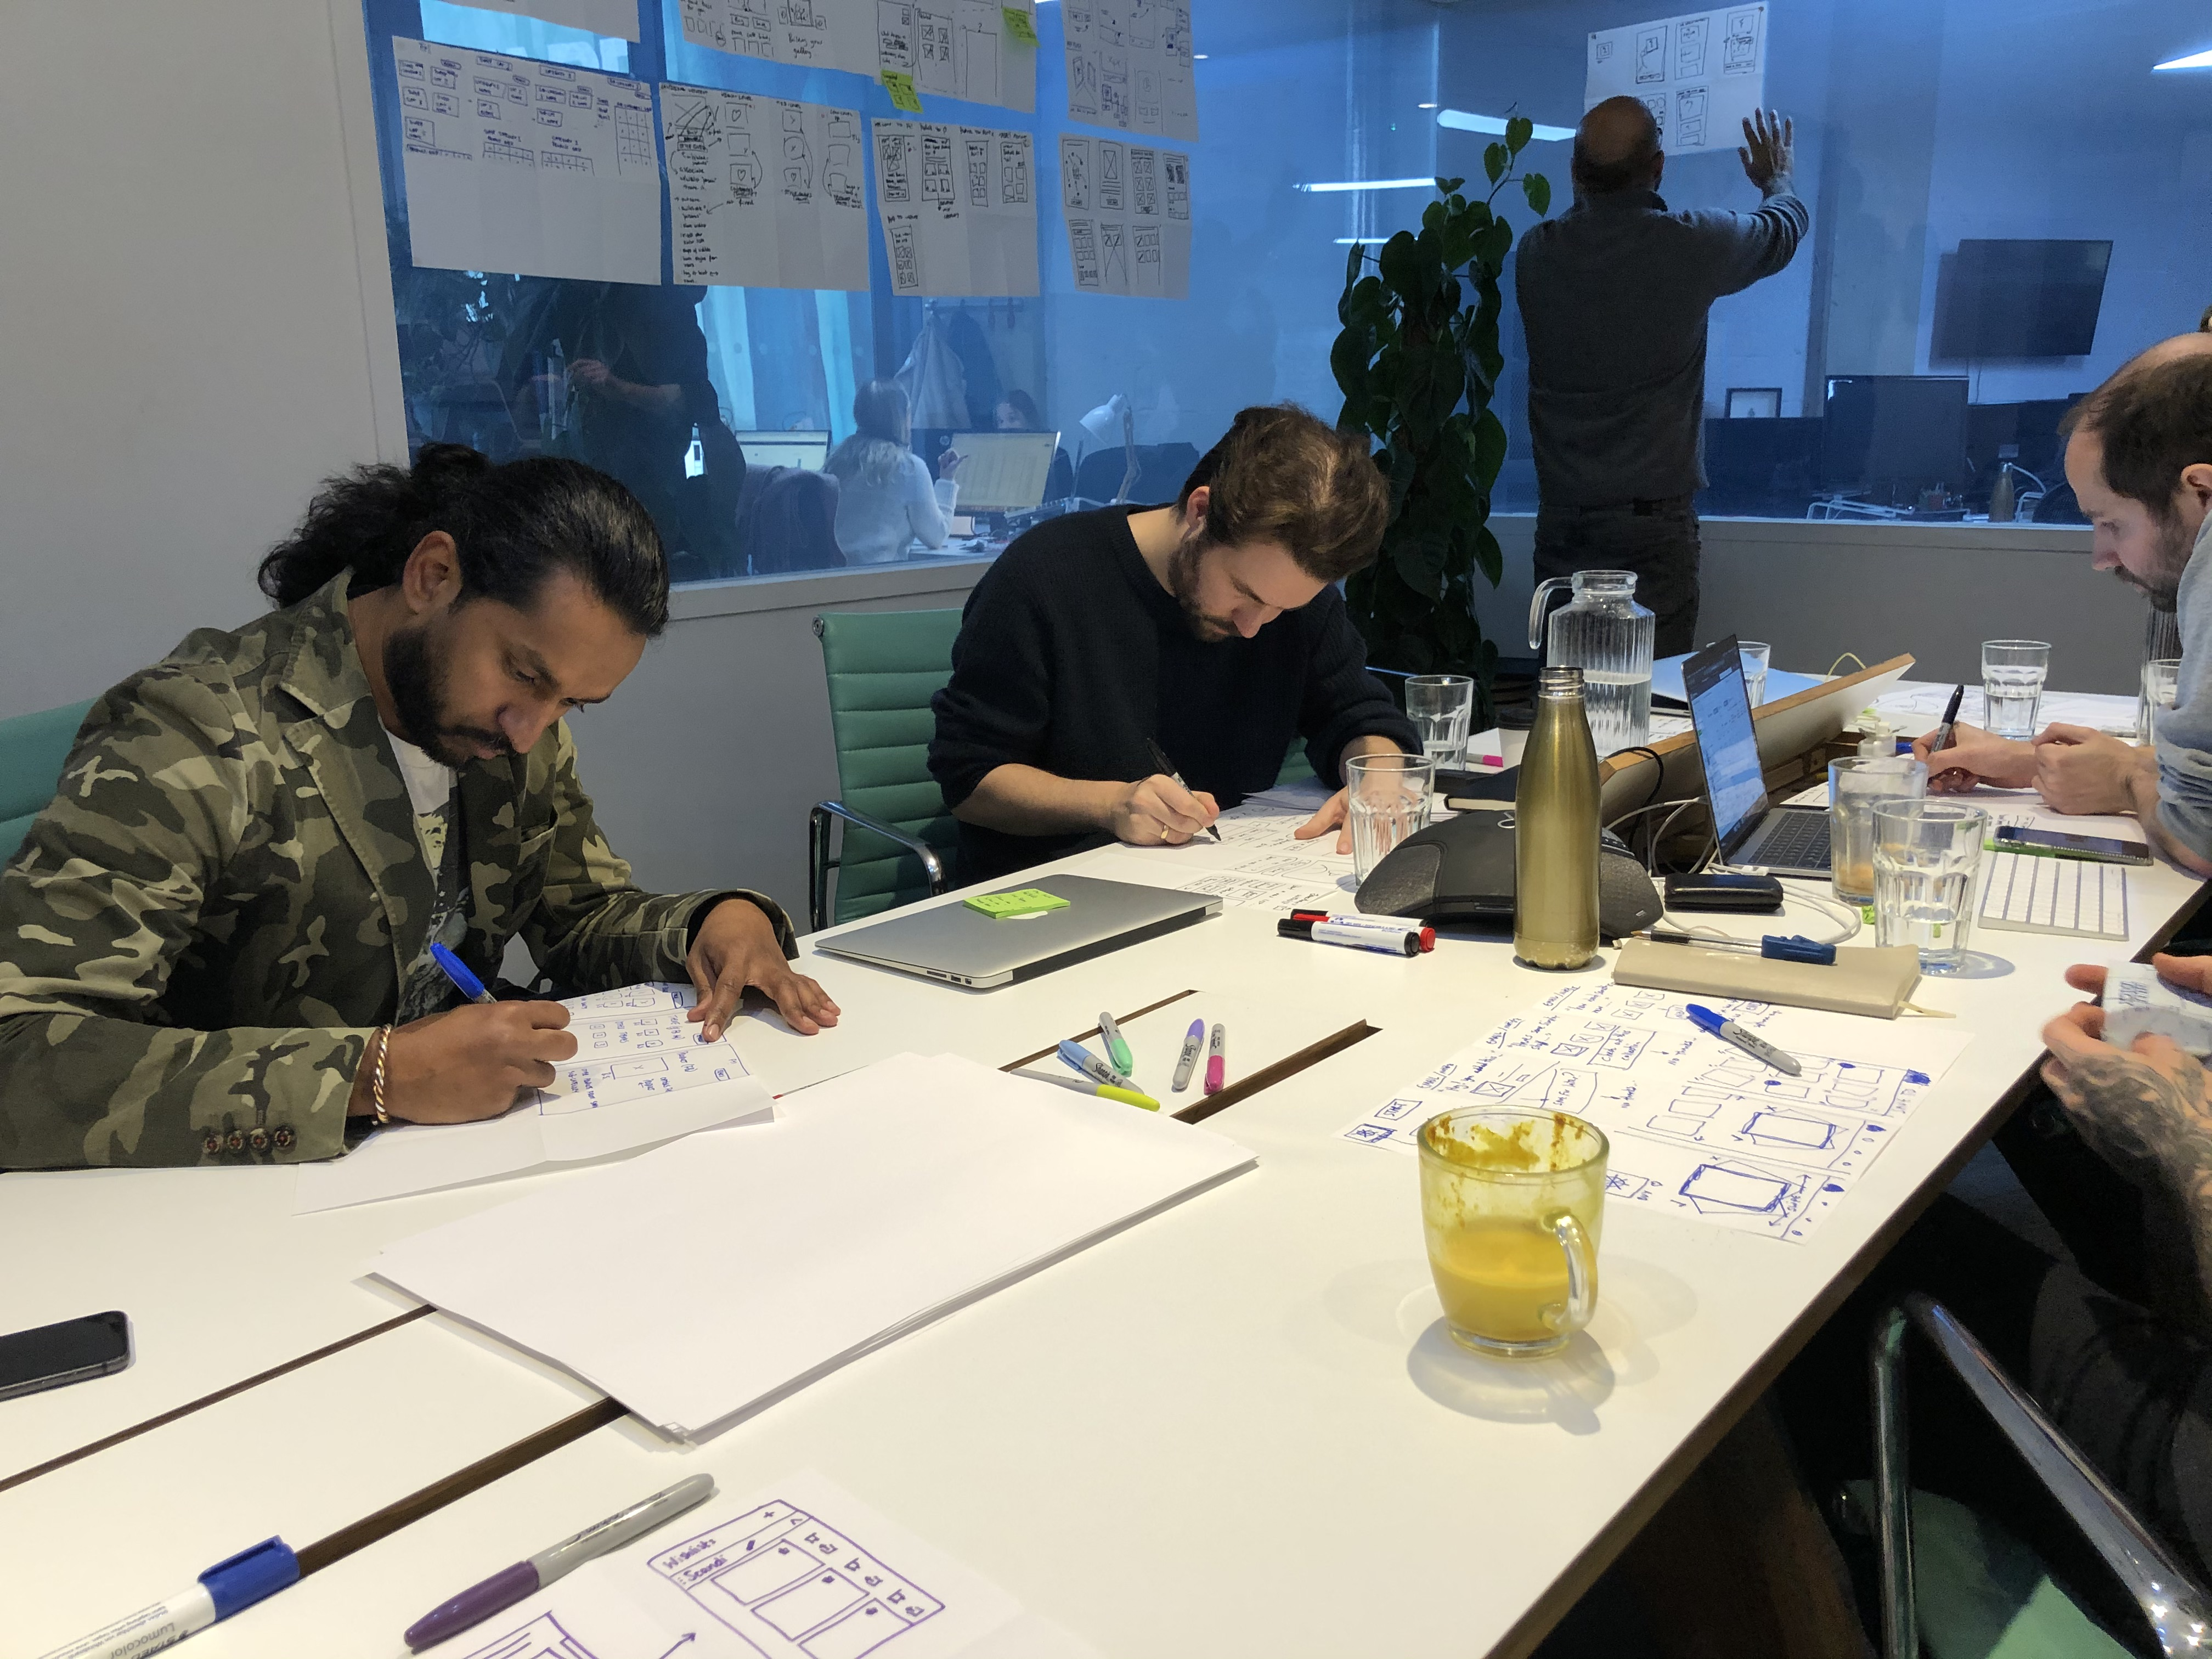 Founders from Fy are sketching their crazy 8's ideas during the design sprint